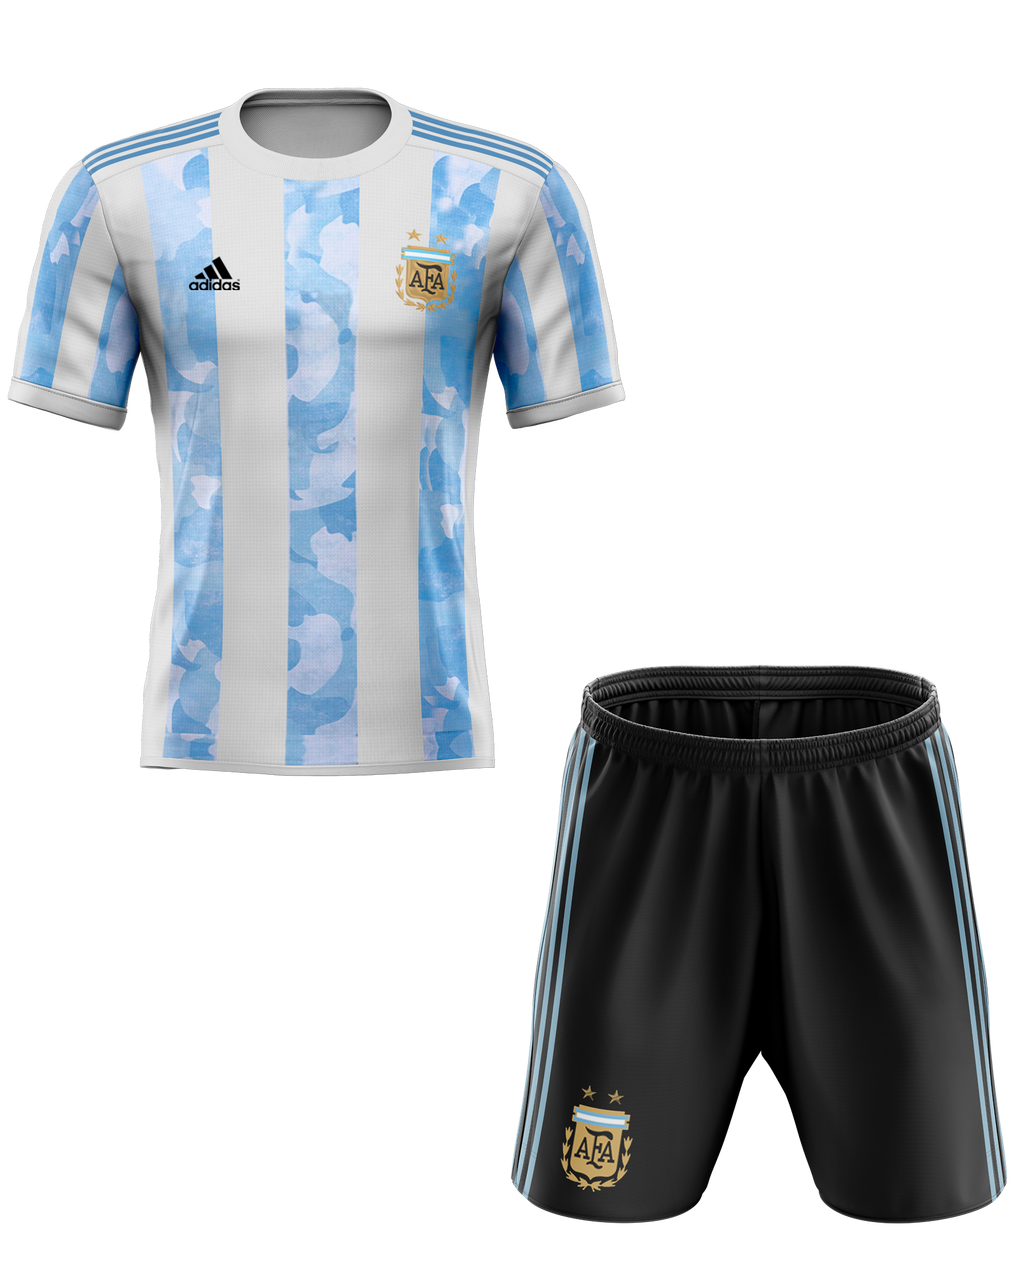 2020 Argentina Home Kids Kit With Free Name And Number Ck4u